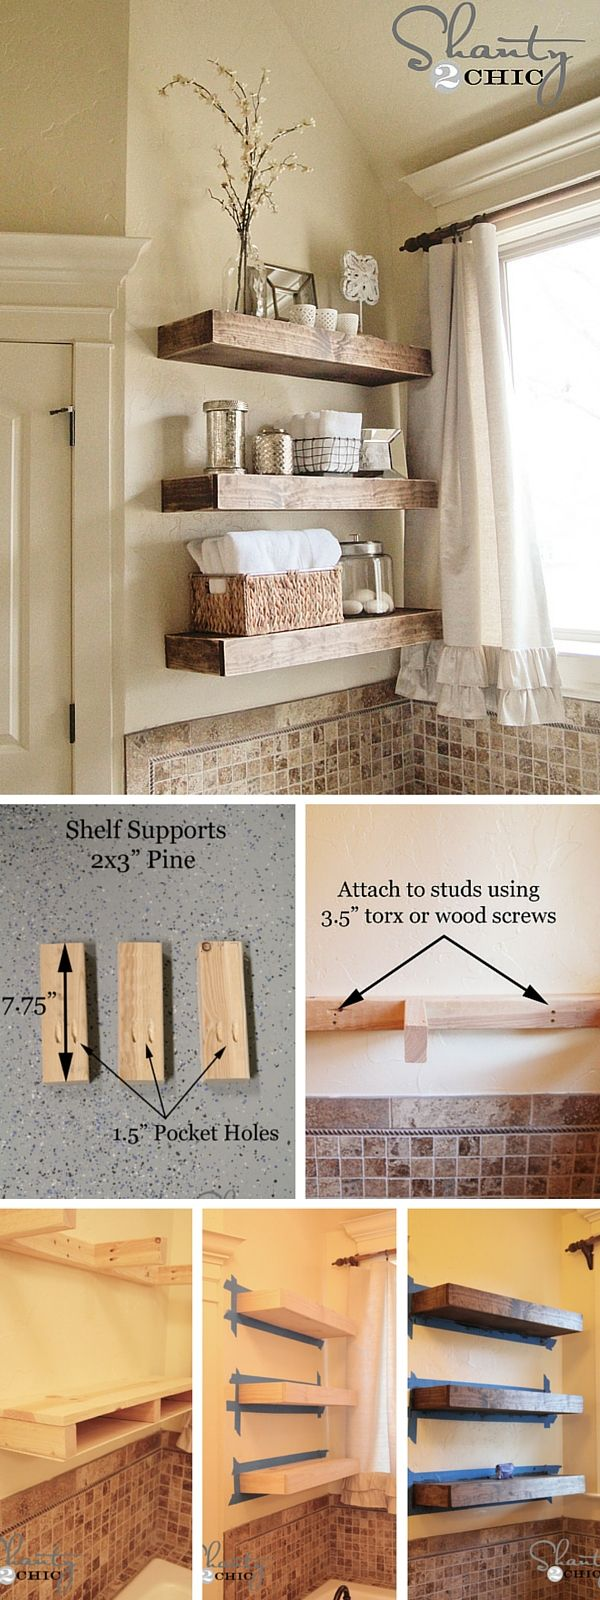 best ideas about rustic bathroom decor on pinterest rustic bathroom